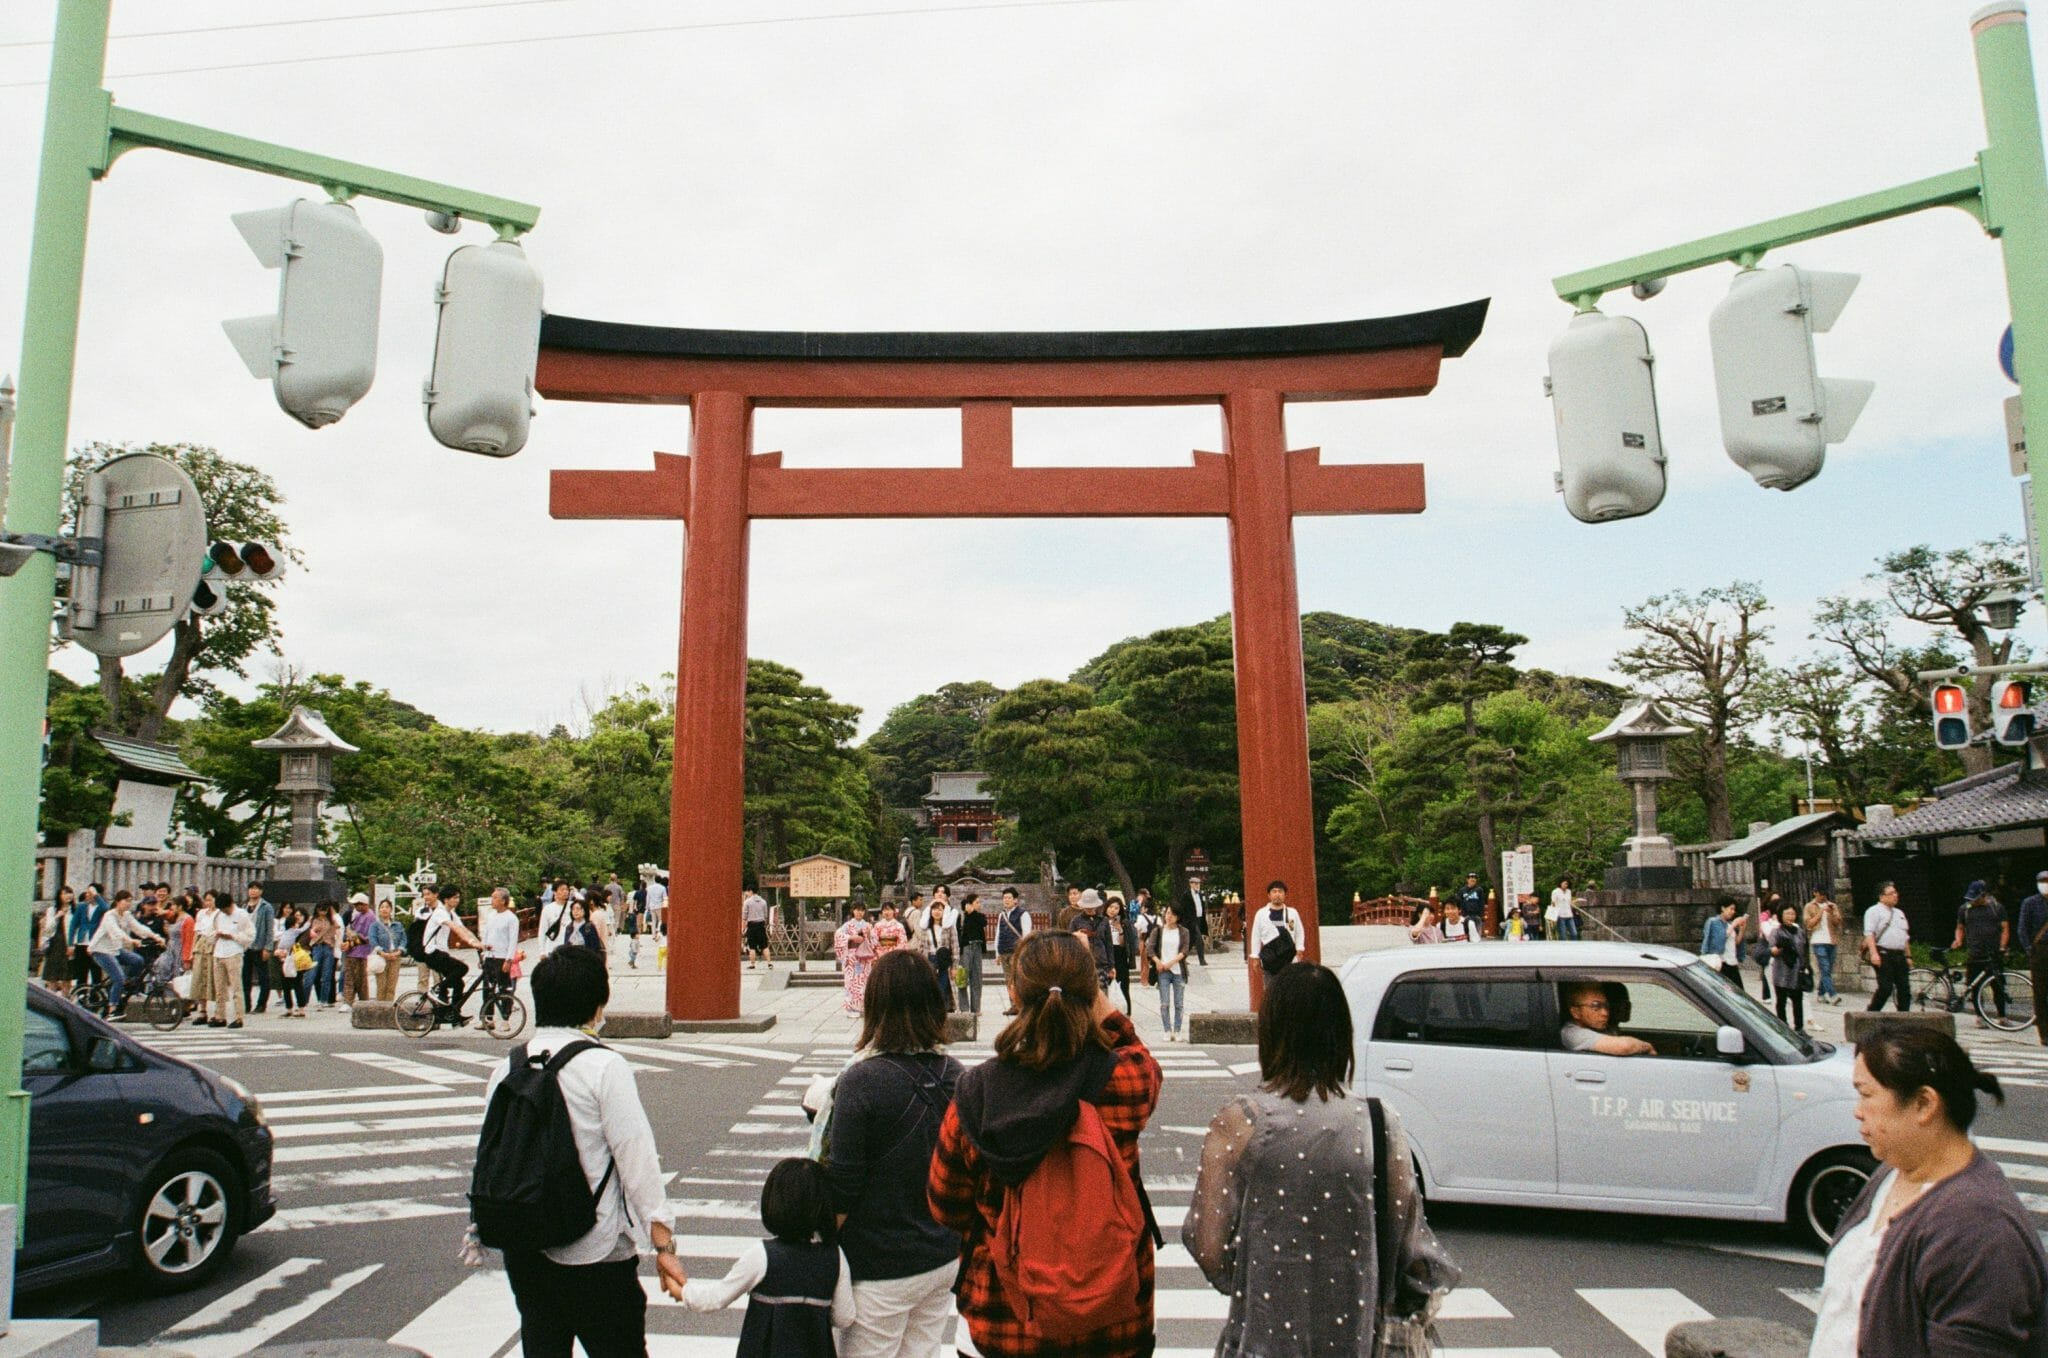 Matsumae International Foundation Research Fellowship Program in Japan 2022 (Fully Funded)